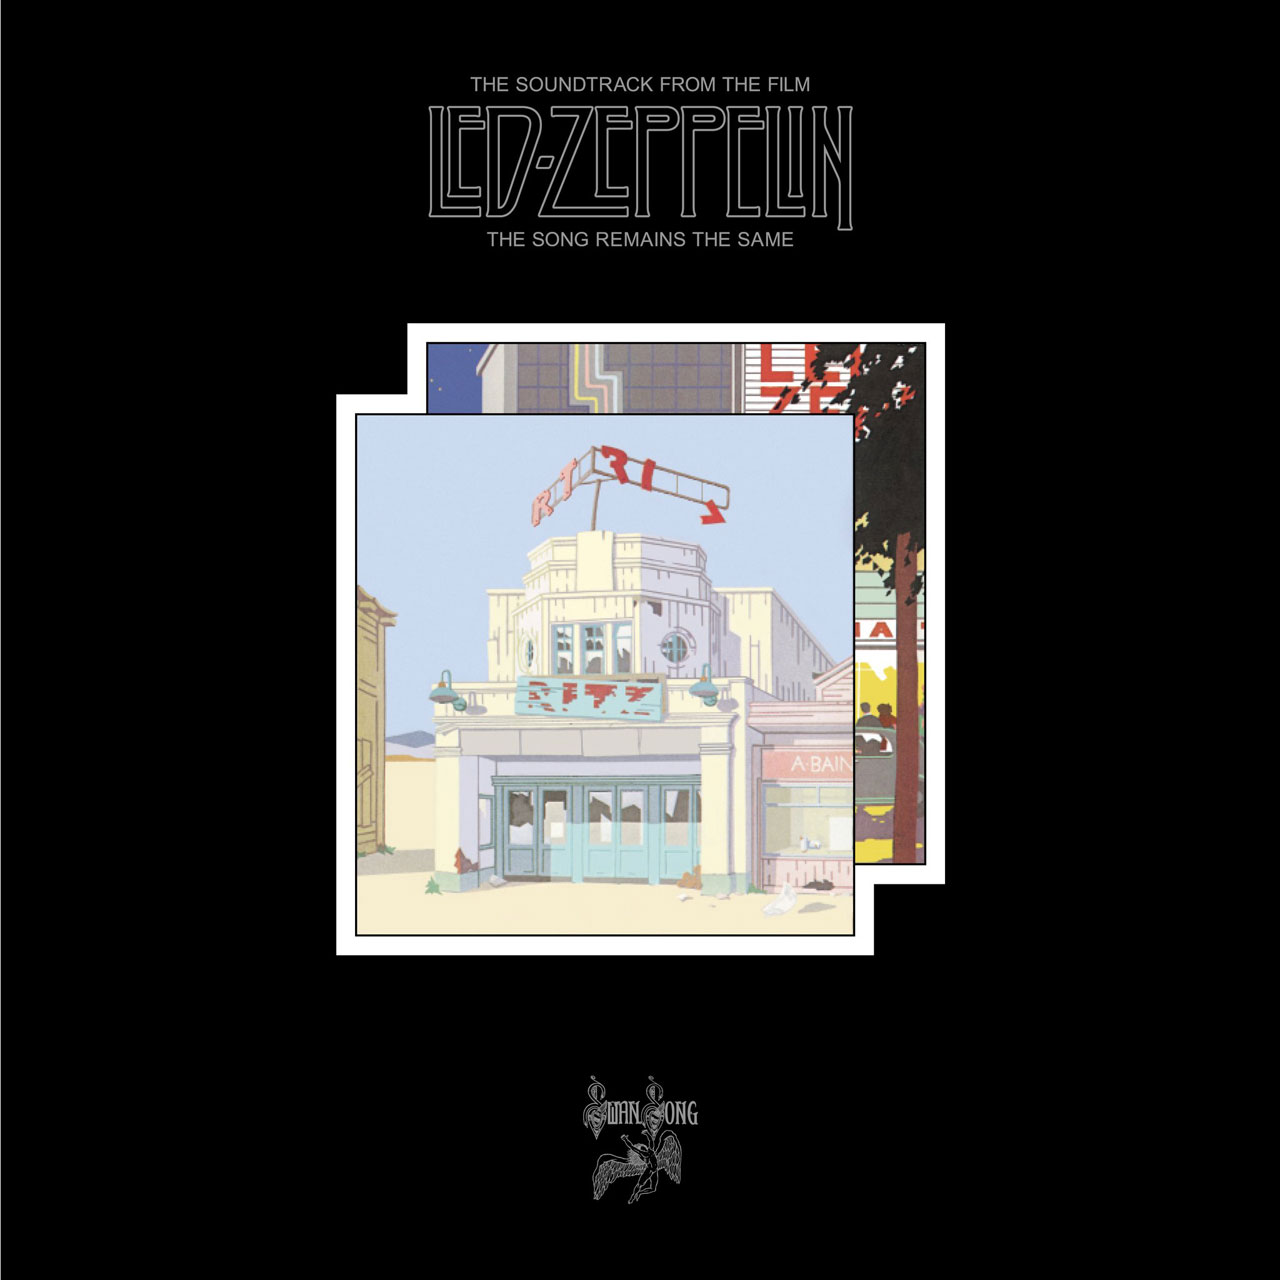 Led Zeppelin - The Song Remains The Same (Box) - 4 x LP